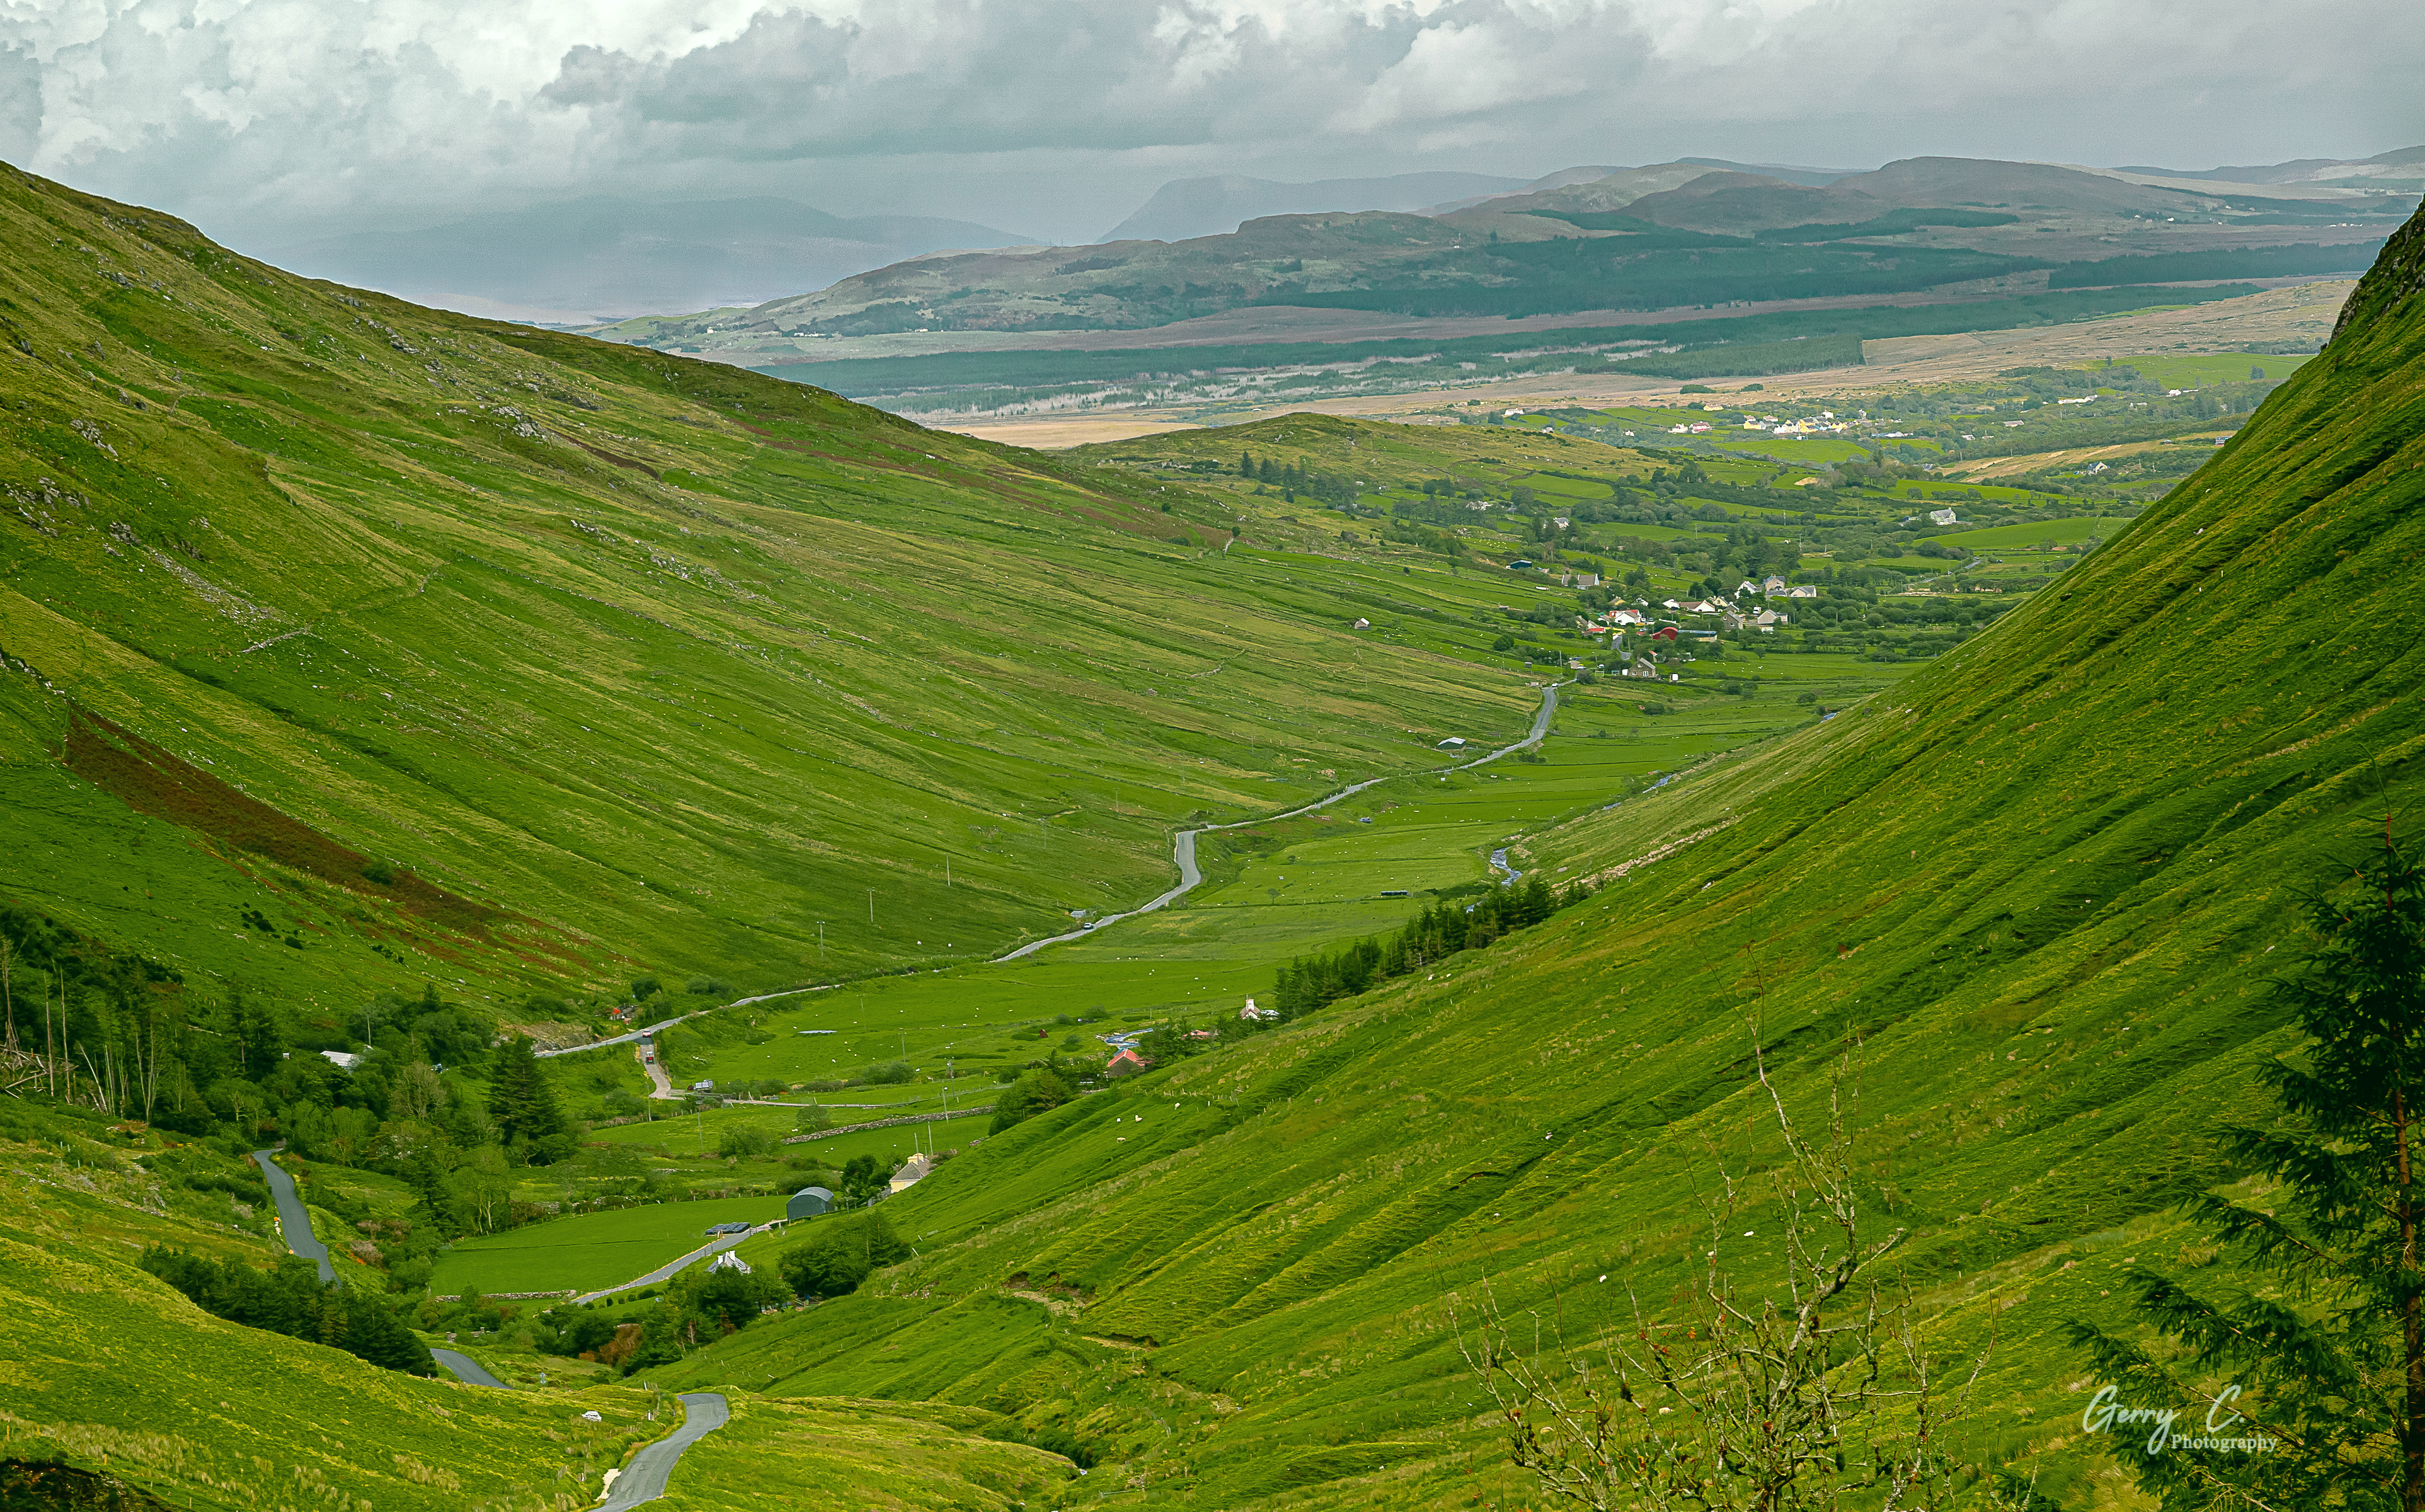 Glengesh Pass, Co. Donegal